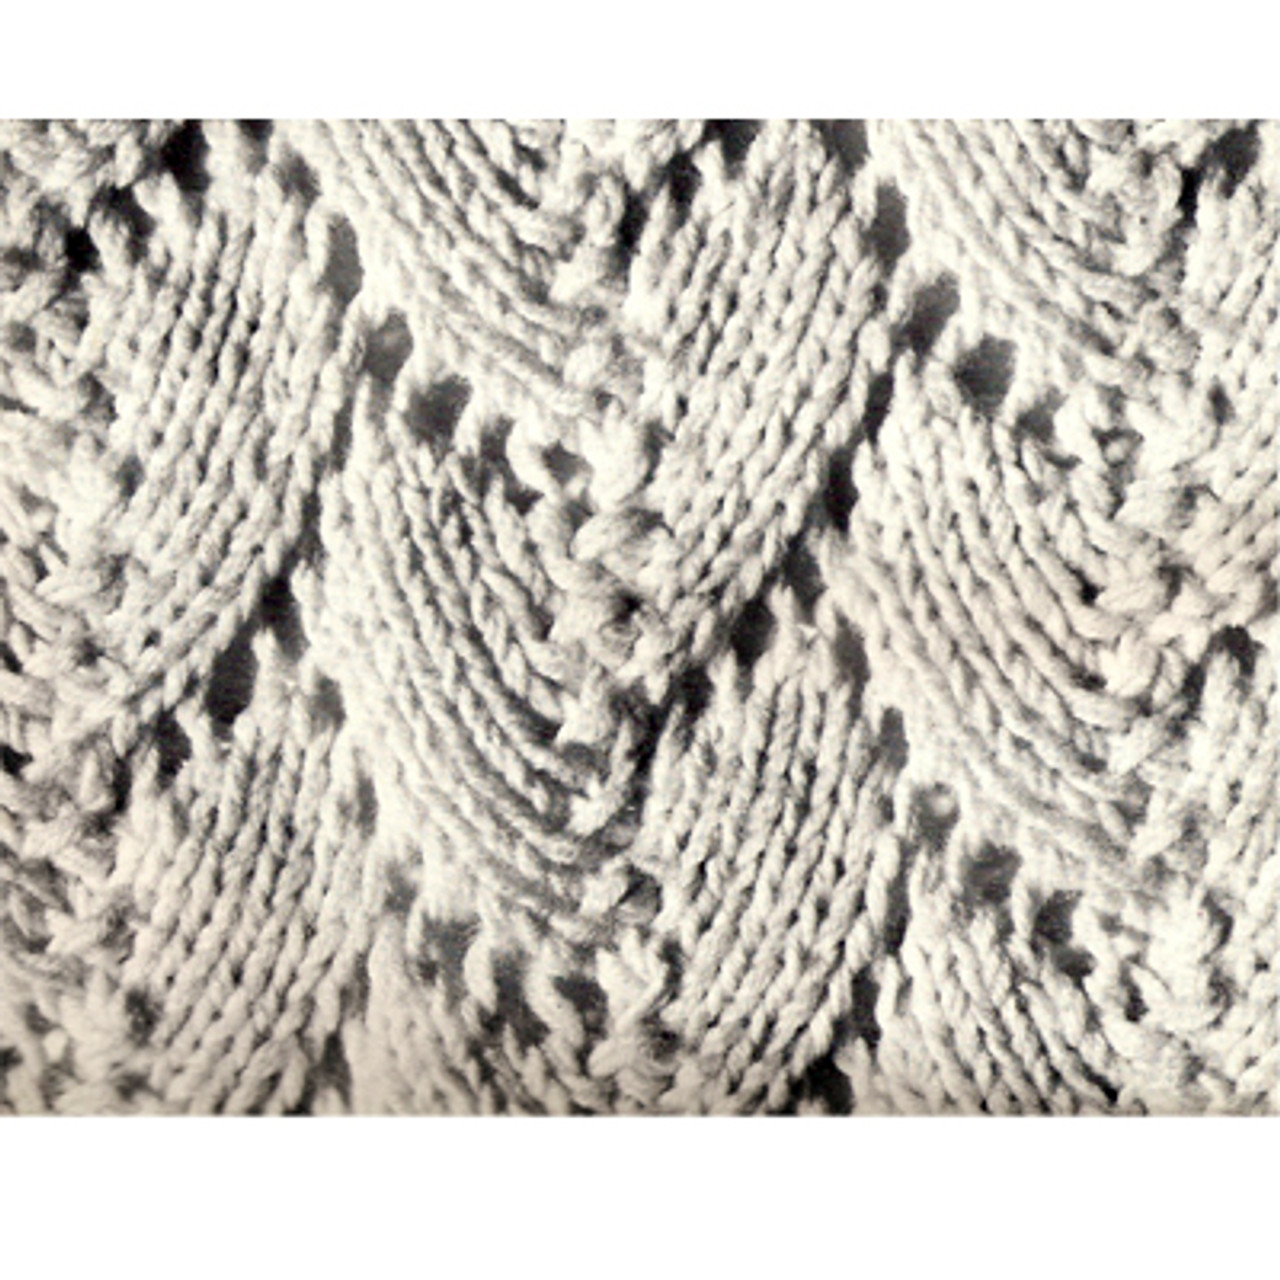 Knitted Afghan pattern stitch detail